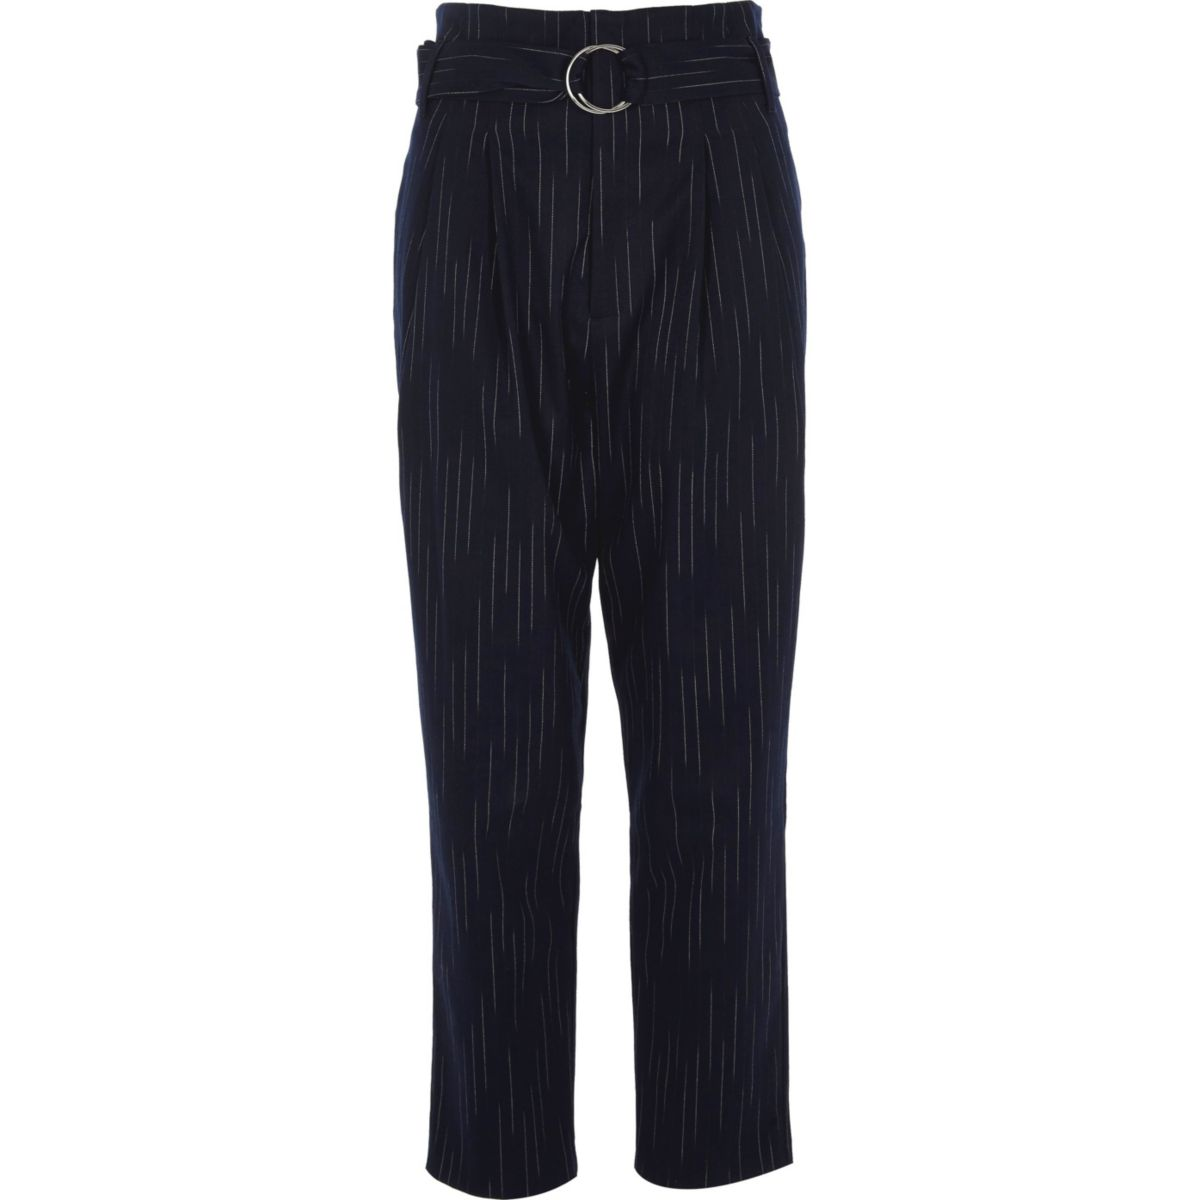 Navy stripe high waisted tapered pants